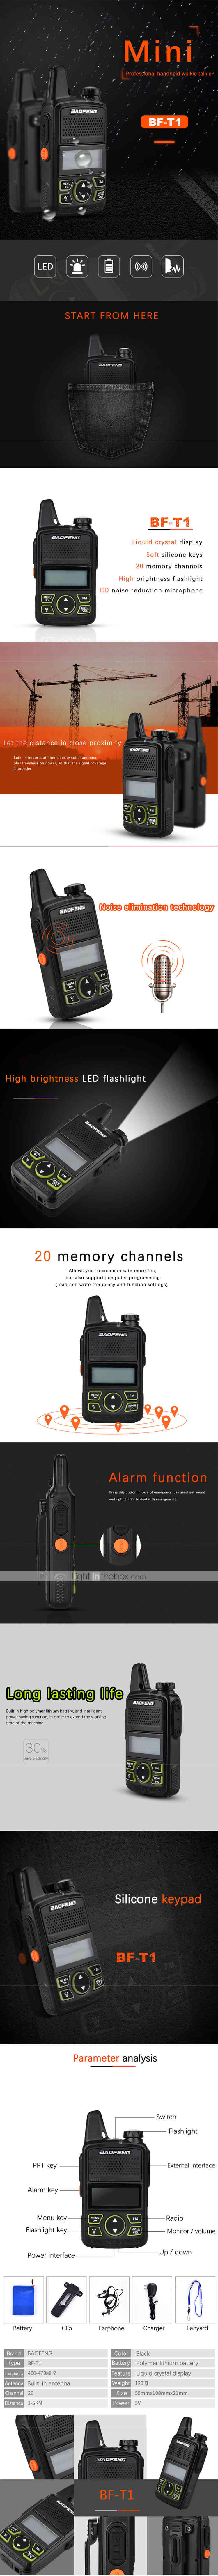 Baofeng T1 Handheld Low Battery Warning Pc Software Programmable Kenwood Tk 840 940 941 Radio Interface Cable Description And Schematic Photos